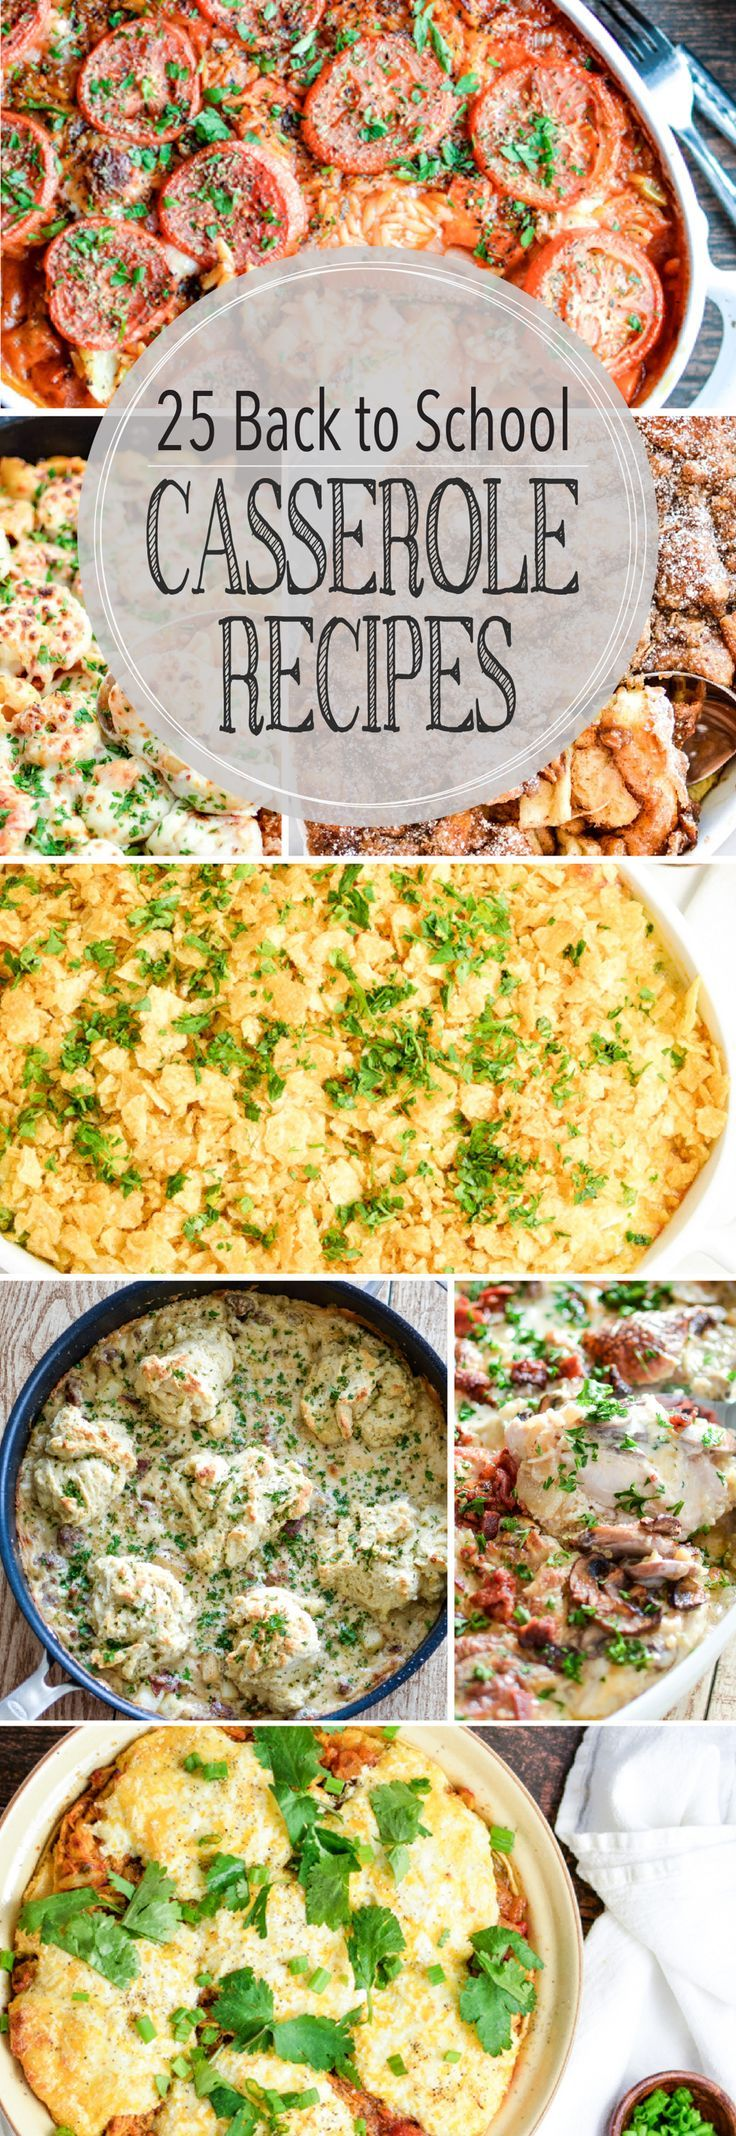 From chicken to french toast and butternut squash to artichokes, here are 25 casseroles you've just gotta try!